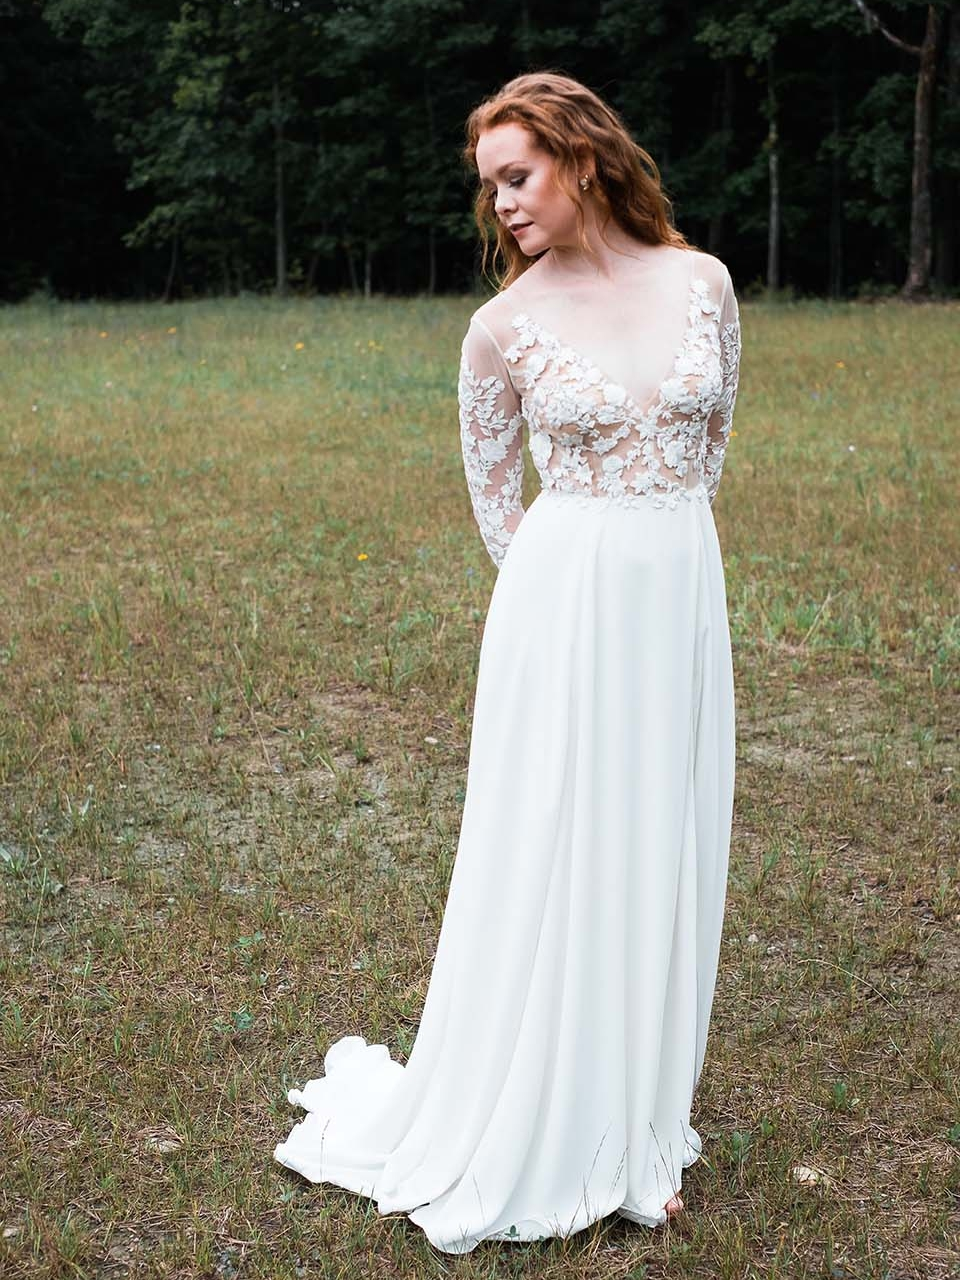 Rebecca_Schoneveld_Juliet_gown_long_sleeved_nude_tulle_embroidered_bodiec_skit_romantic_boho.jpg